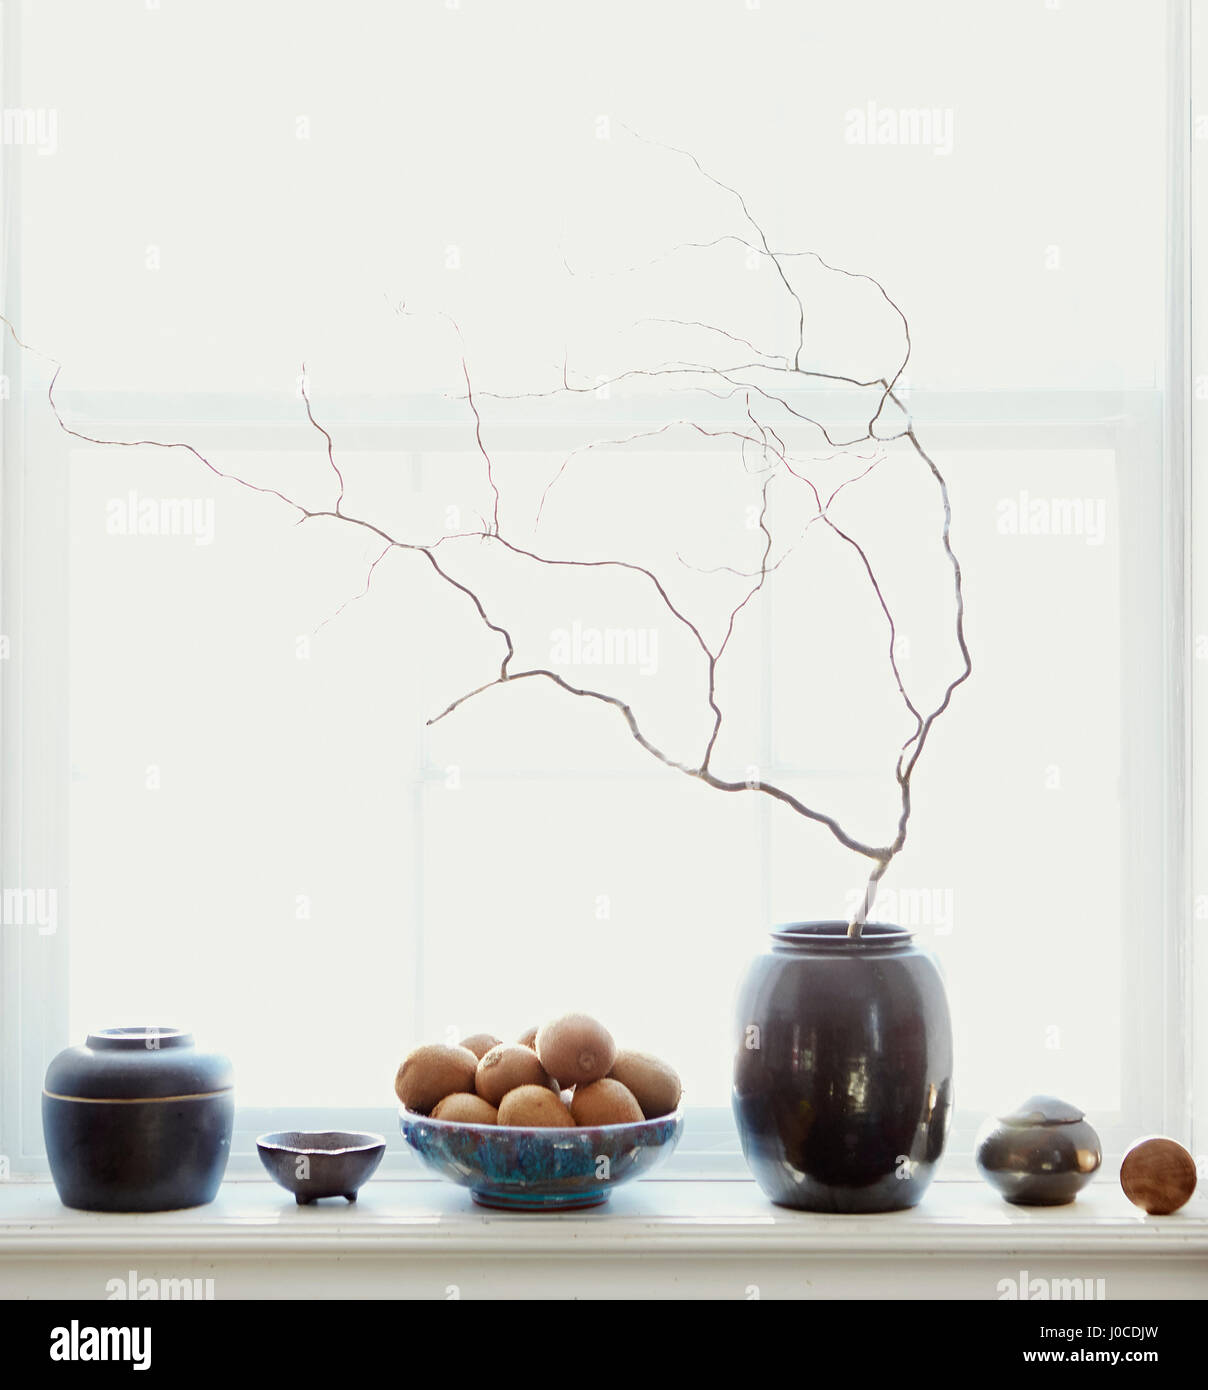 Composition of fruits and vases by window - Stock Image